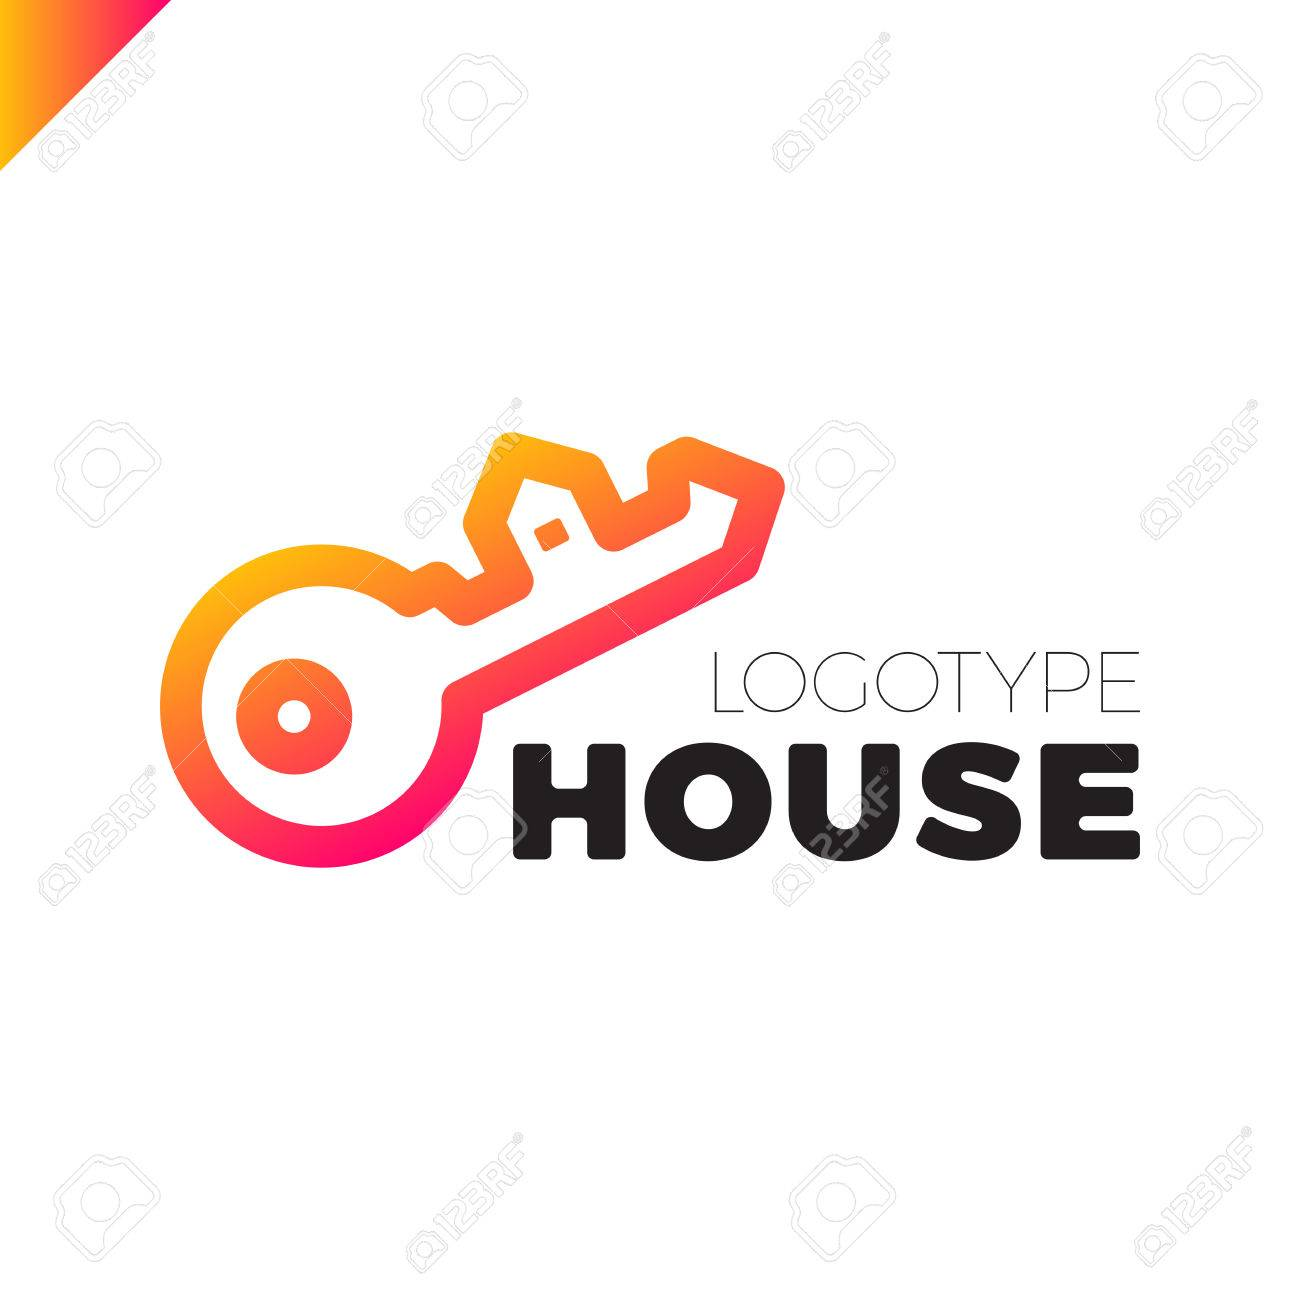 Home Security Key House Logo Outline Design Royalty Free Cliparts ...